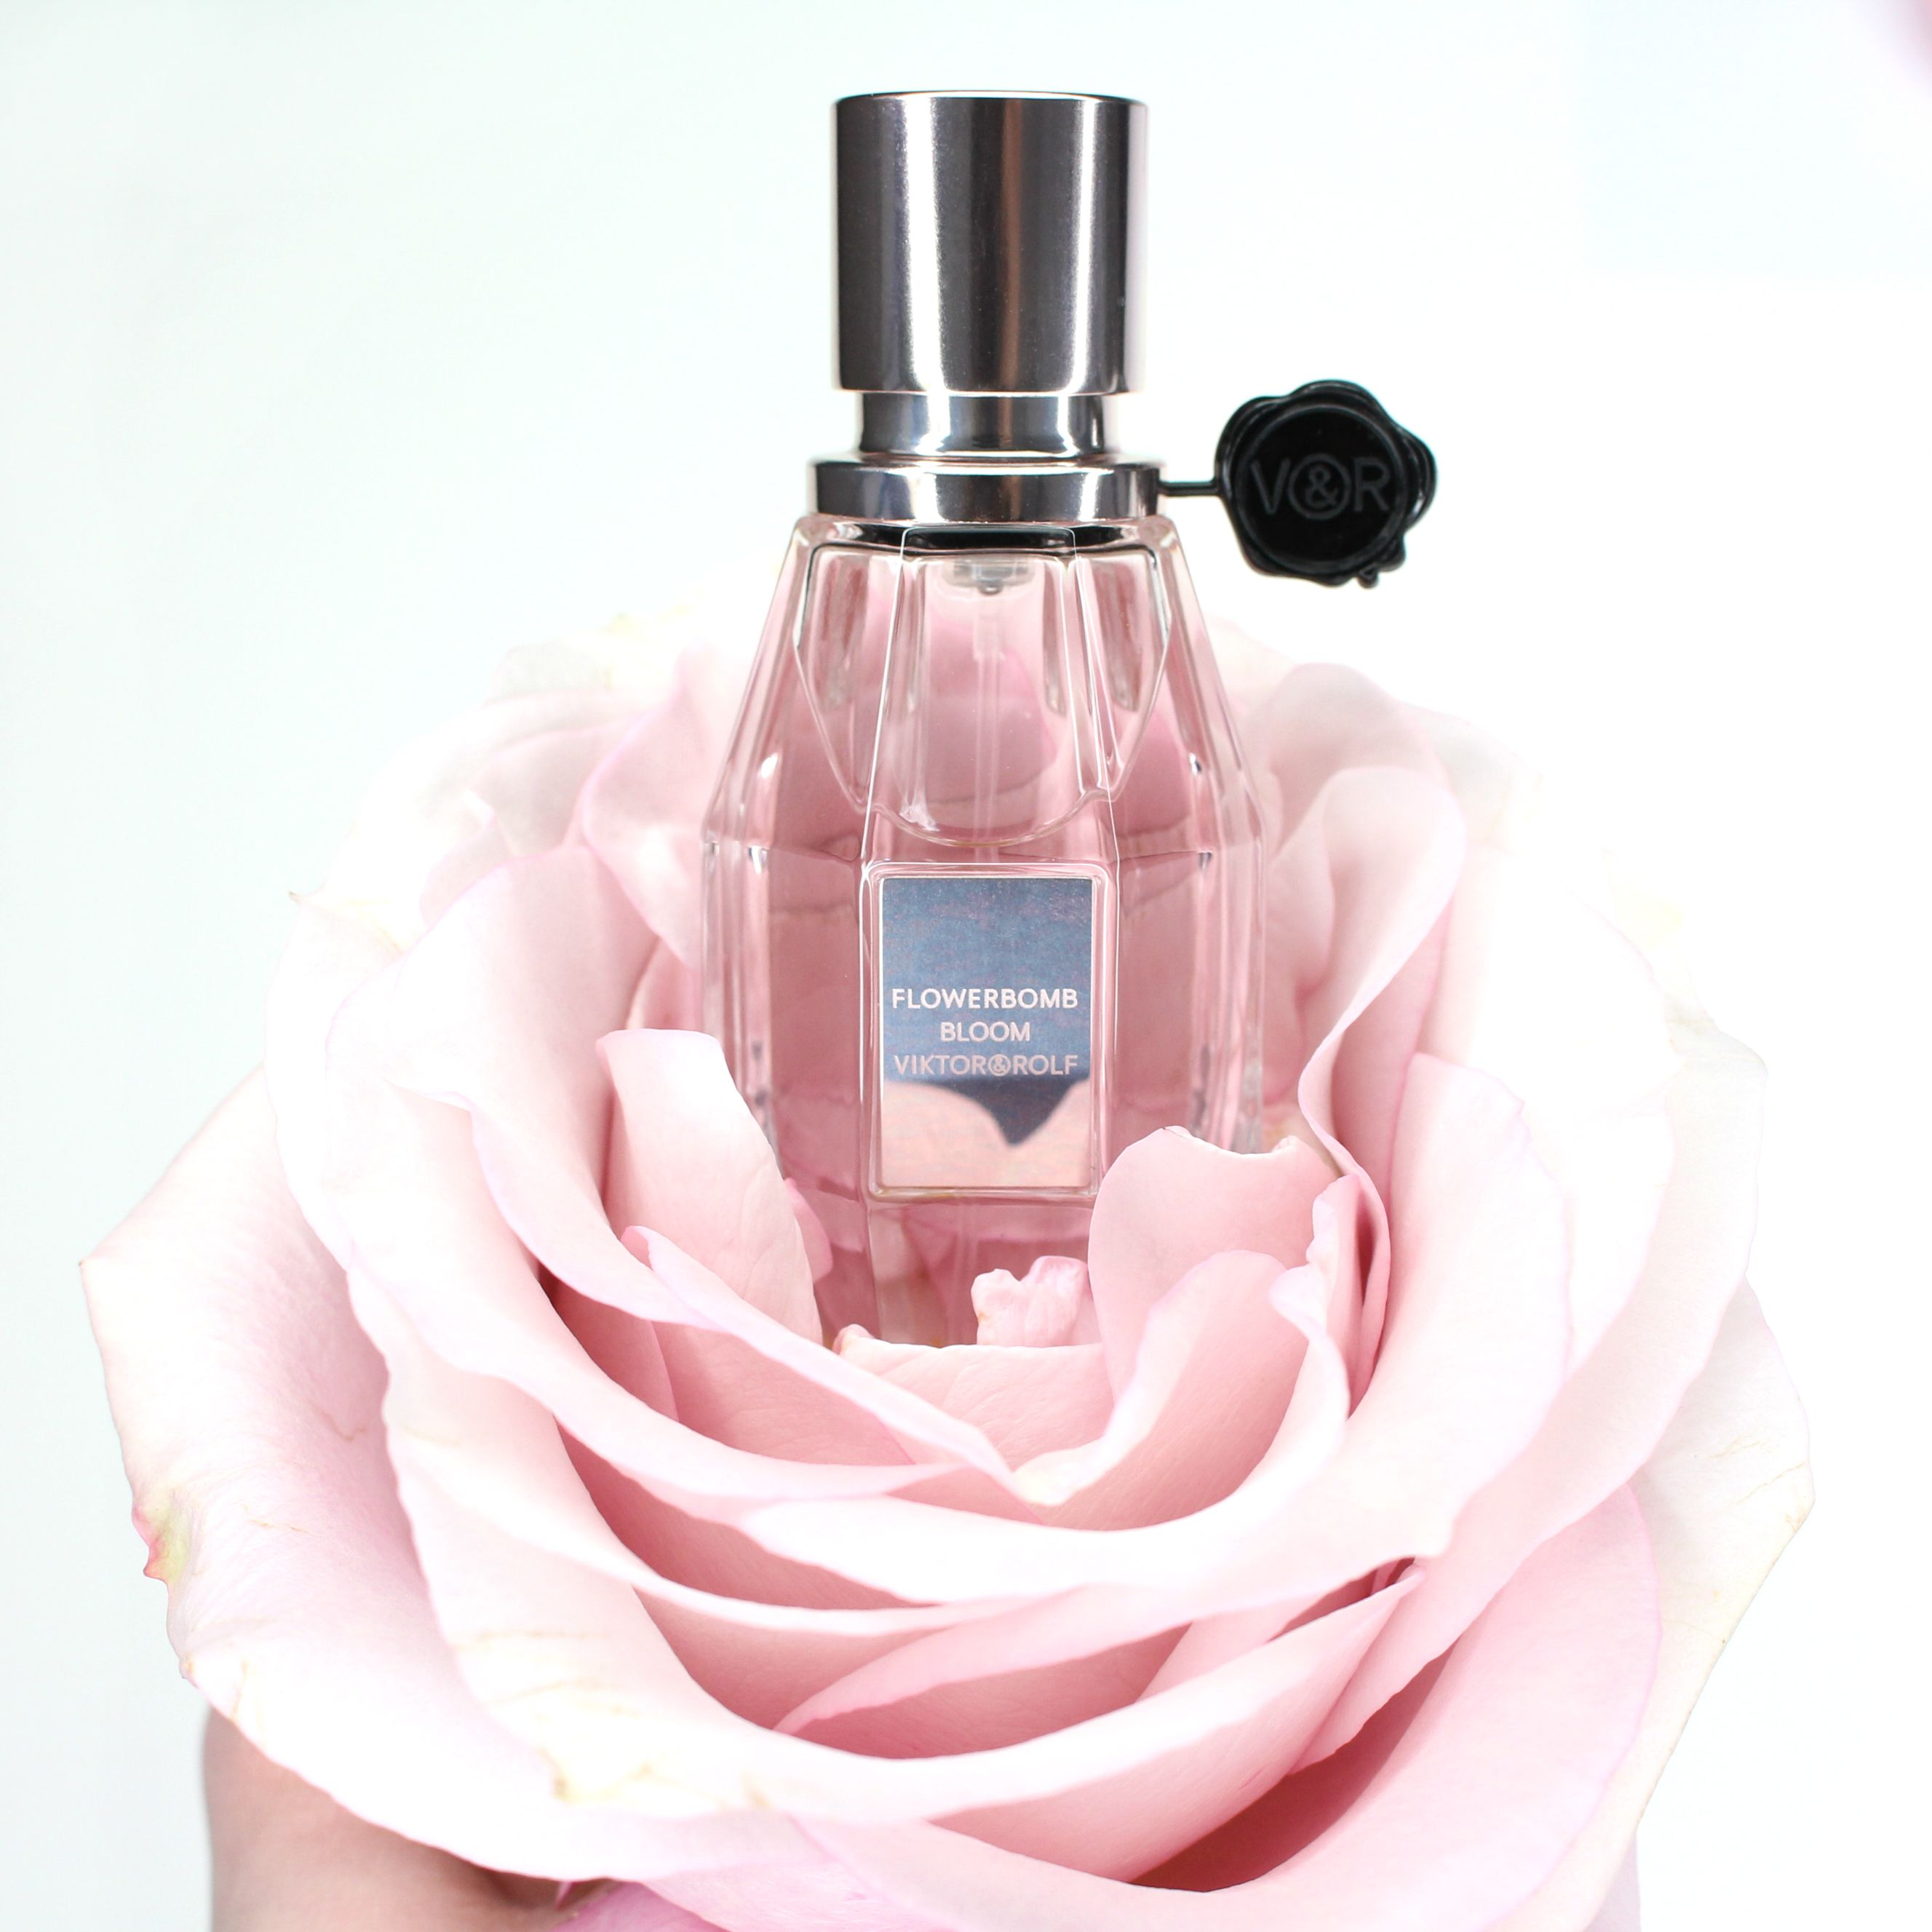 Viktor & Rolf -  Flowerbomb Bloom EdT - Parfum erhältlich bei Douglas. Viktor & Rolf - Flowerbomb Bloom Eau de Toilette - perfume available at Douglas.